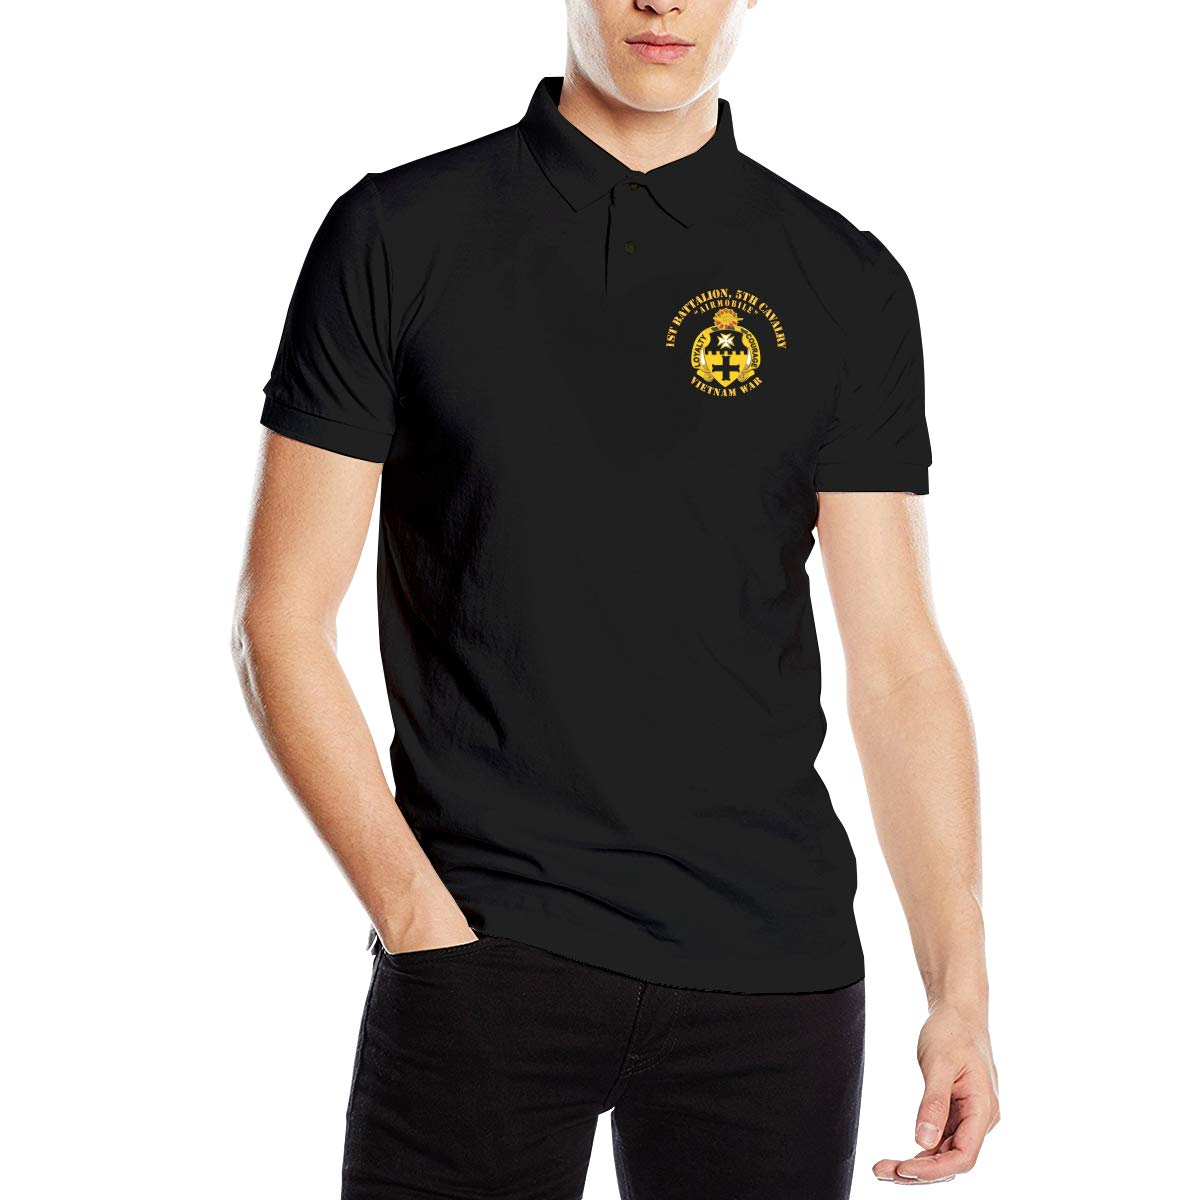 You Know And Good 1st Battalion 5th Cavalry Mens Regular-Fit Cotton Polo Shirt Short Sleeve